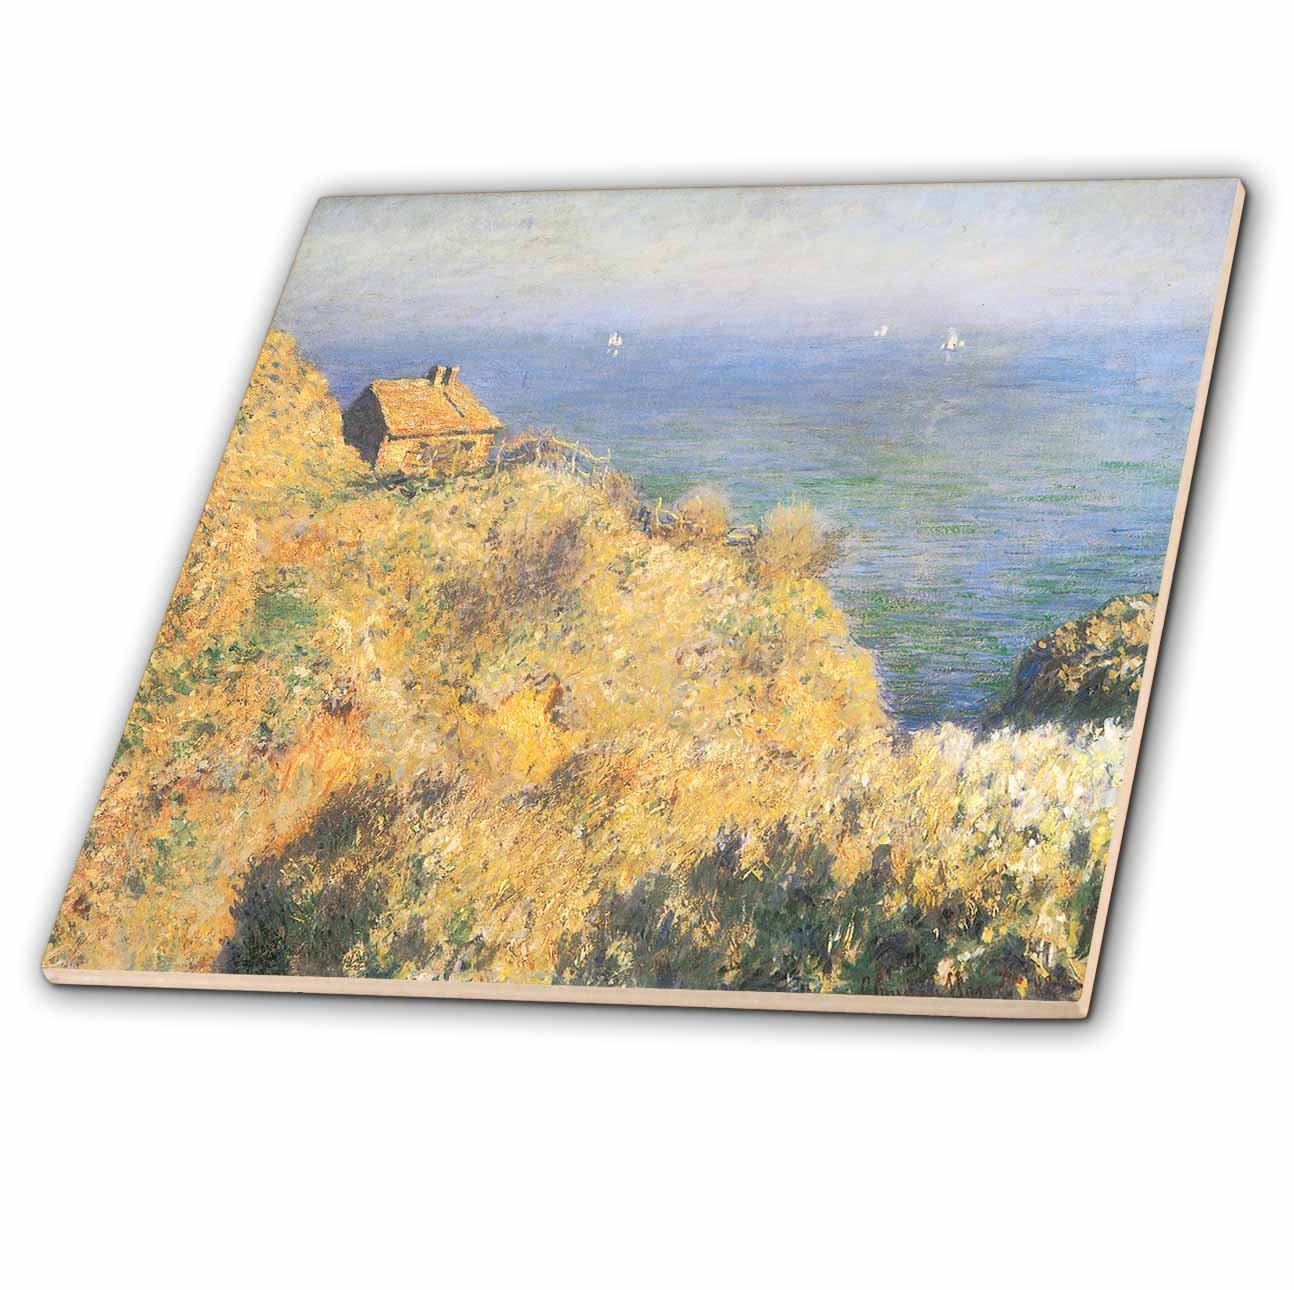 3dRose ct_126598_1 House of The Fisherman, Varengeville by Claude Monet, 1882 Ceramic Tile, 4-Inch